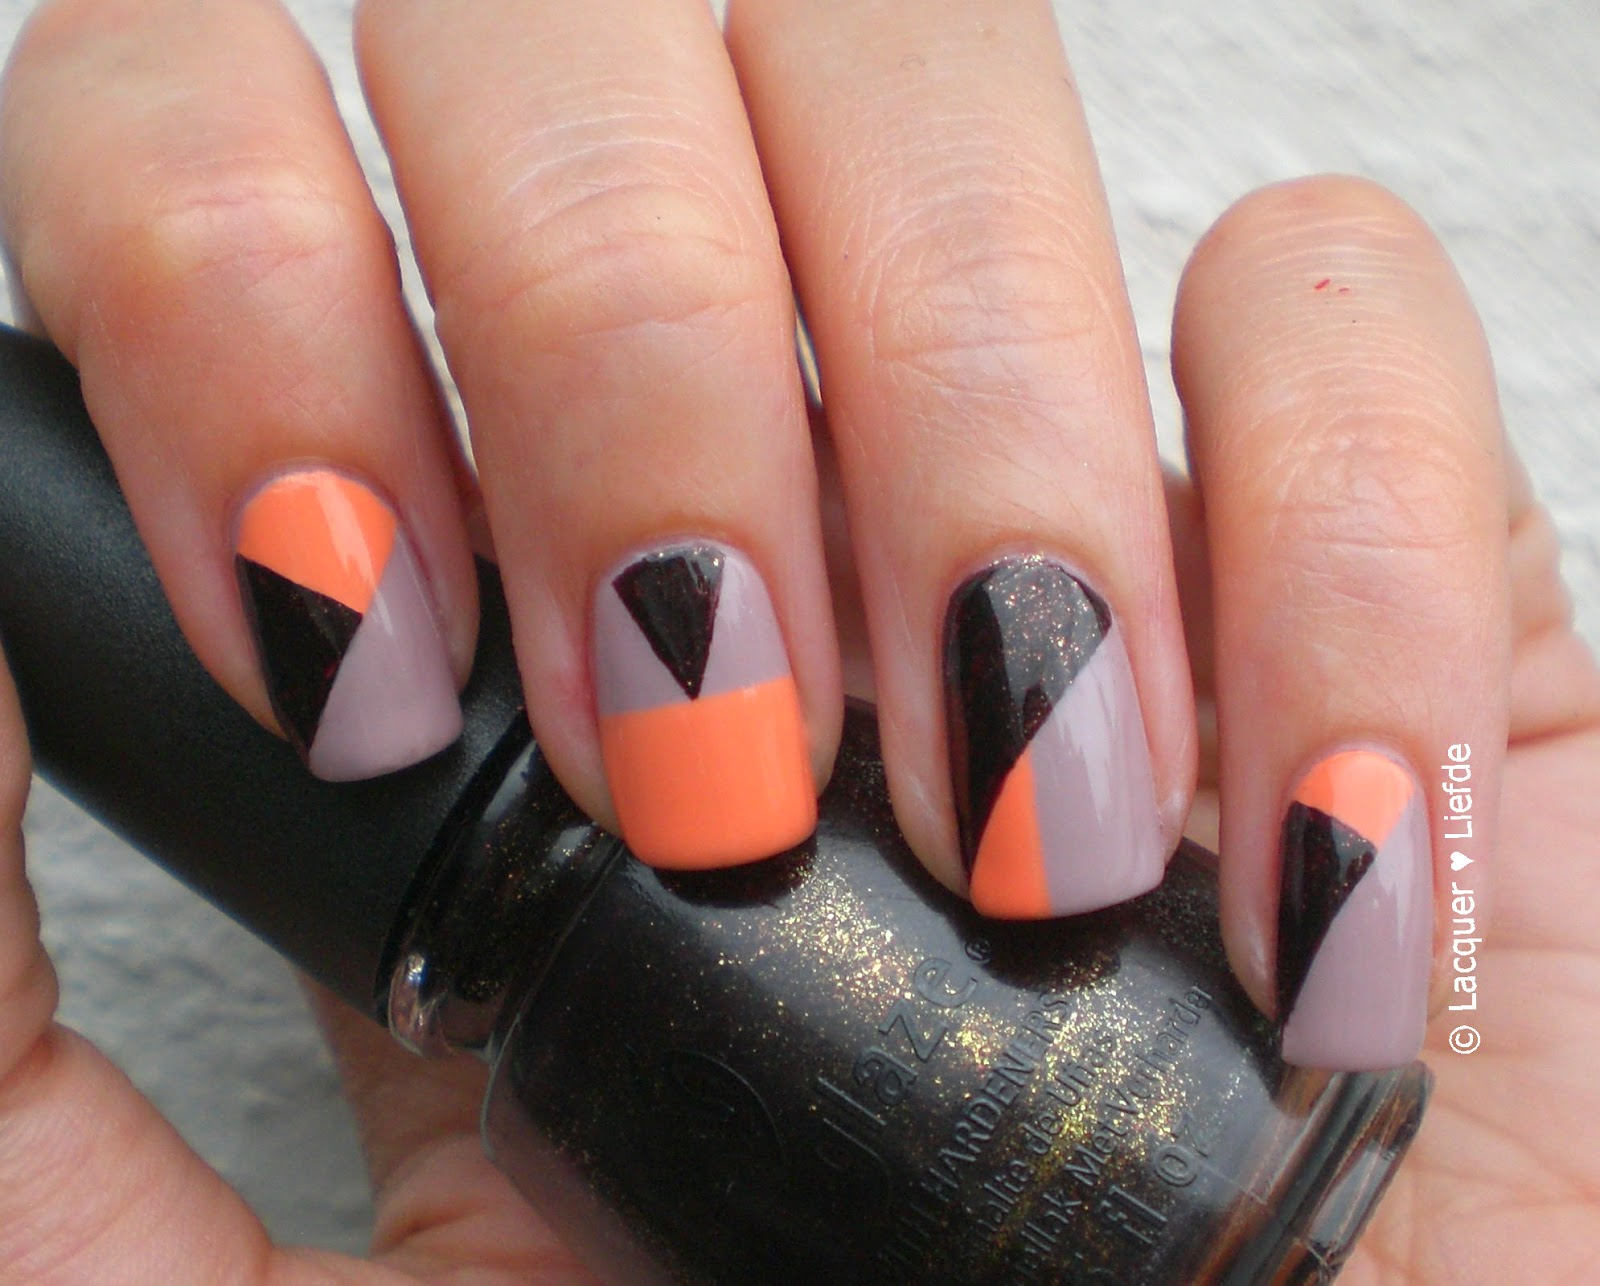 China Glaze Midtown Magic with Kiko 359 and P2 Business Women